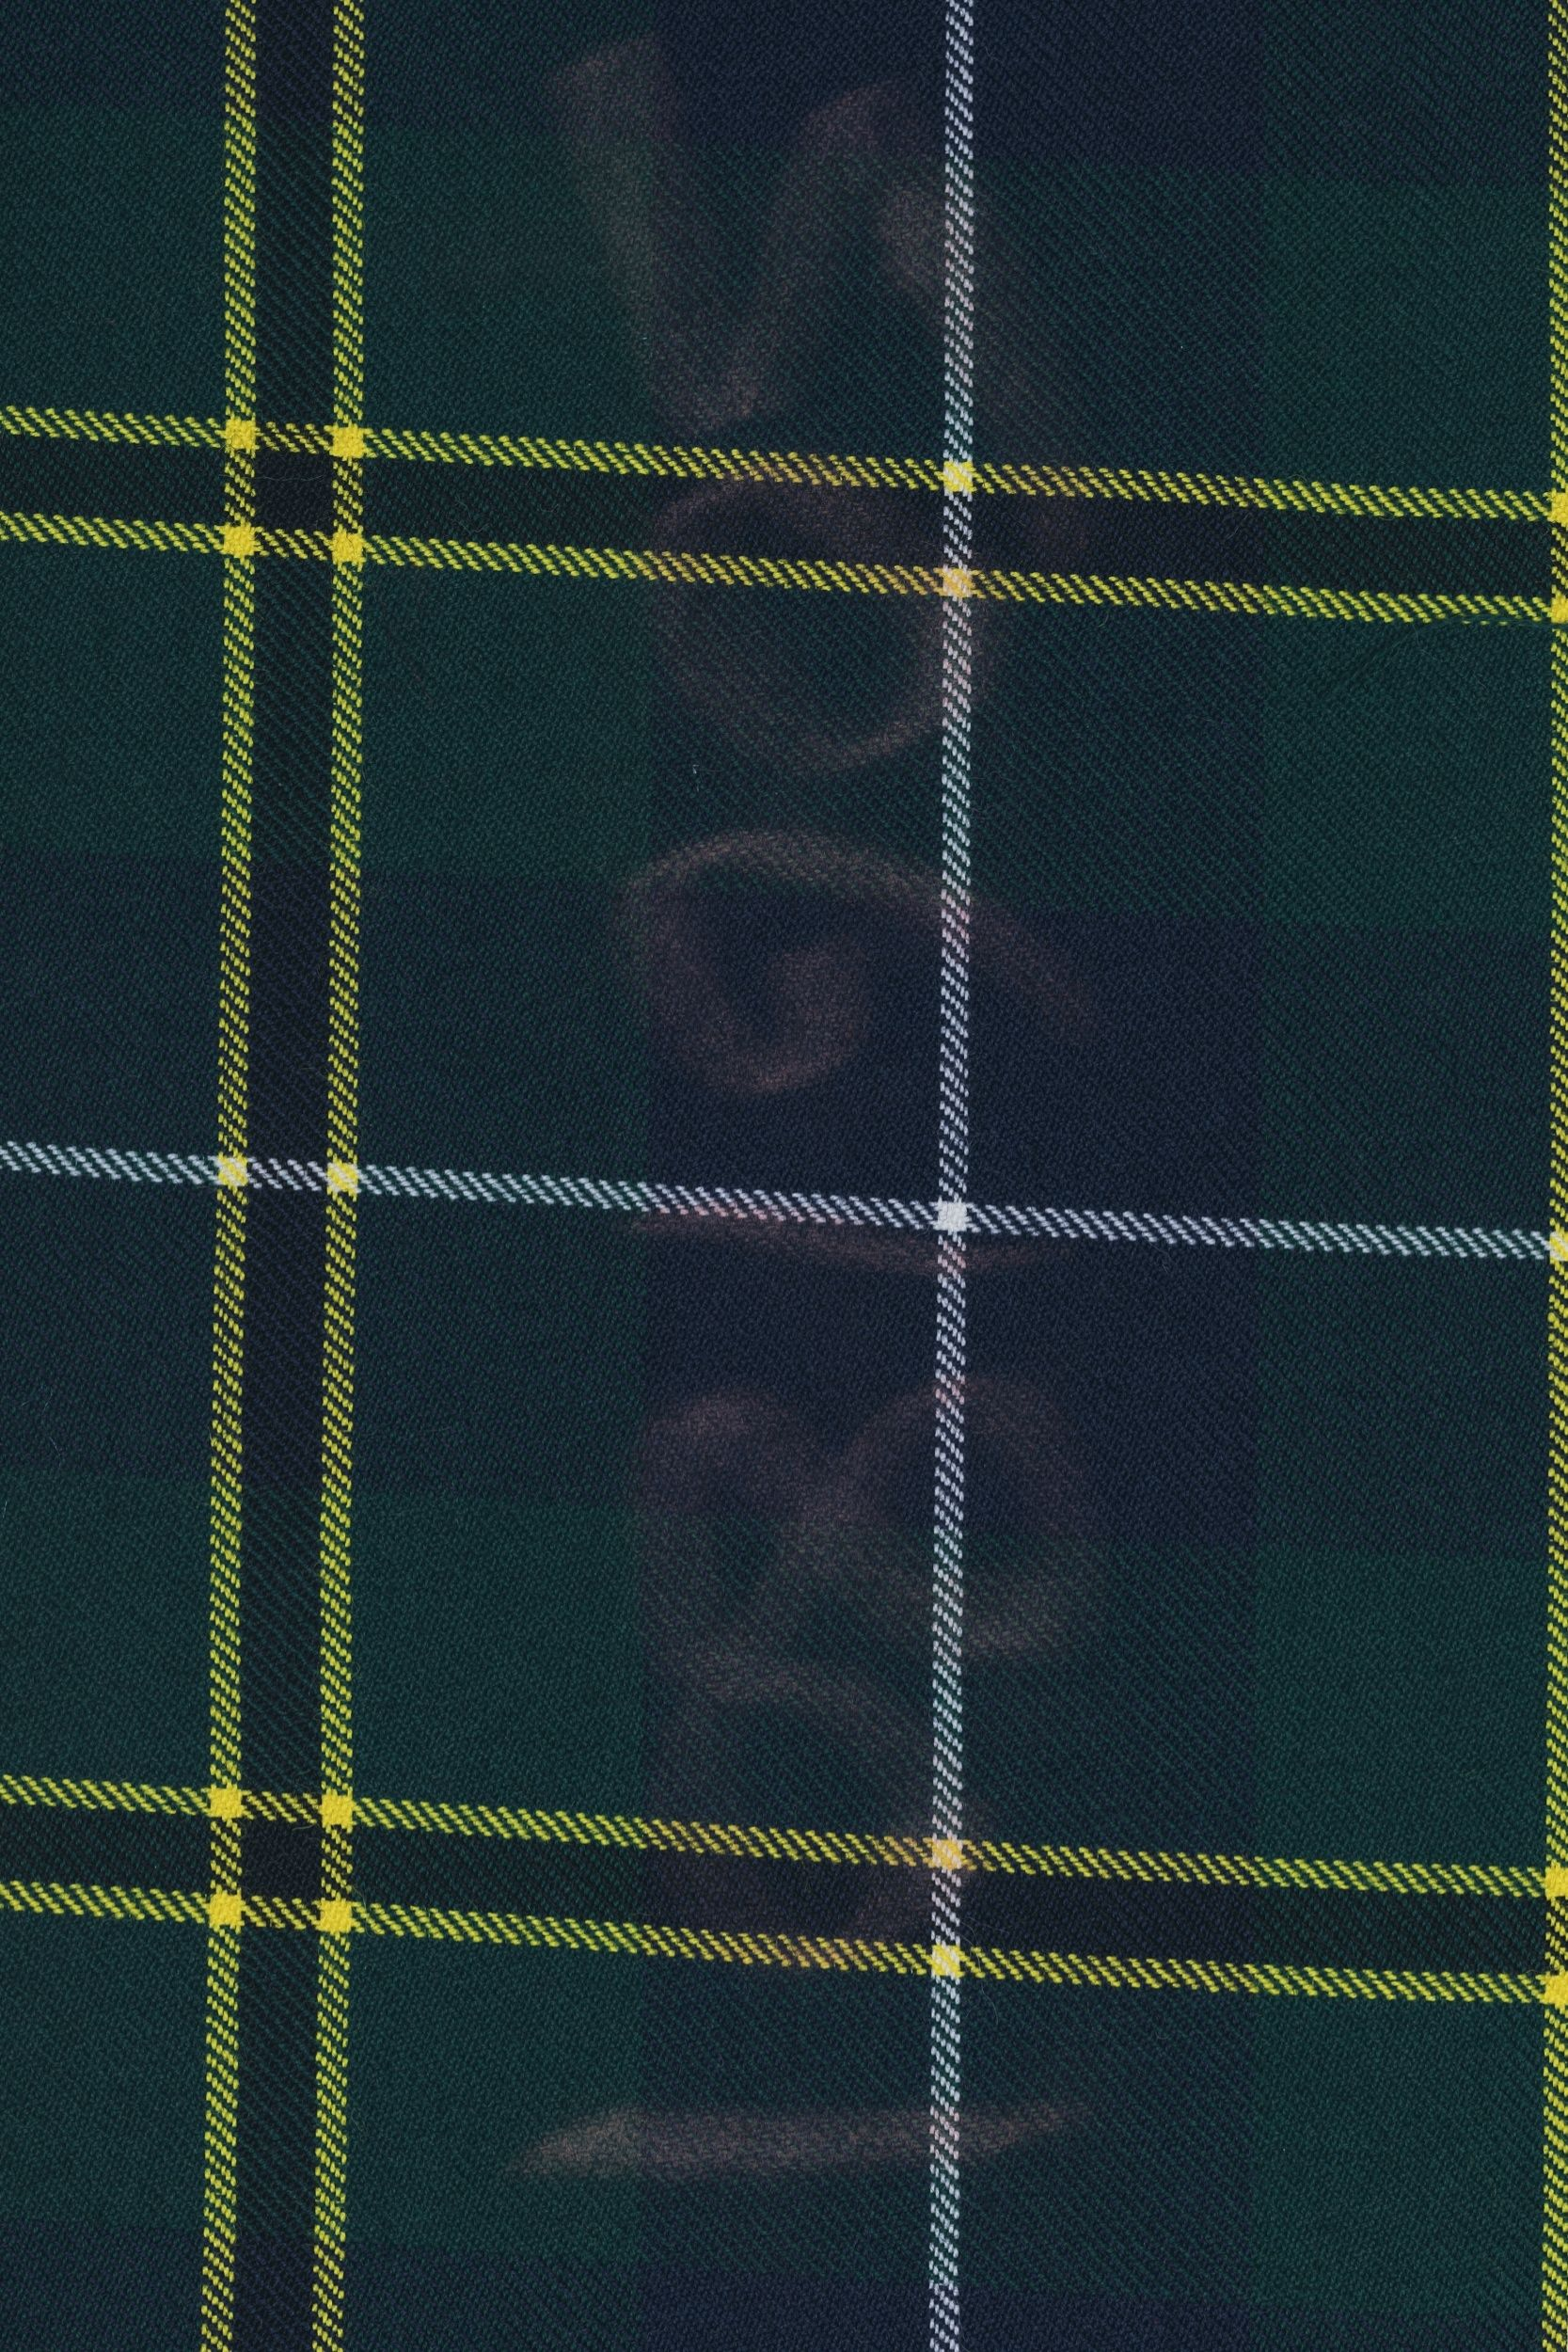 tartan from scotland used in liebre style boots and oxford limited edition designs